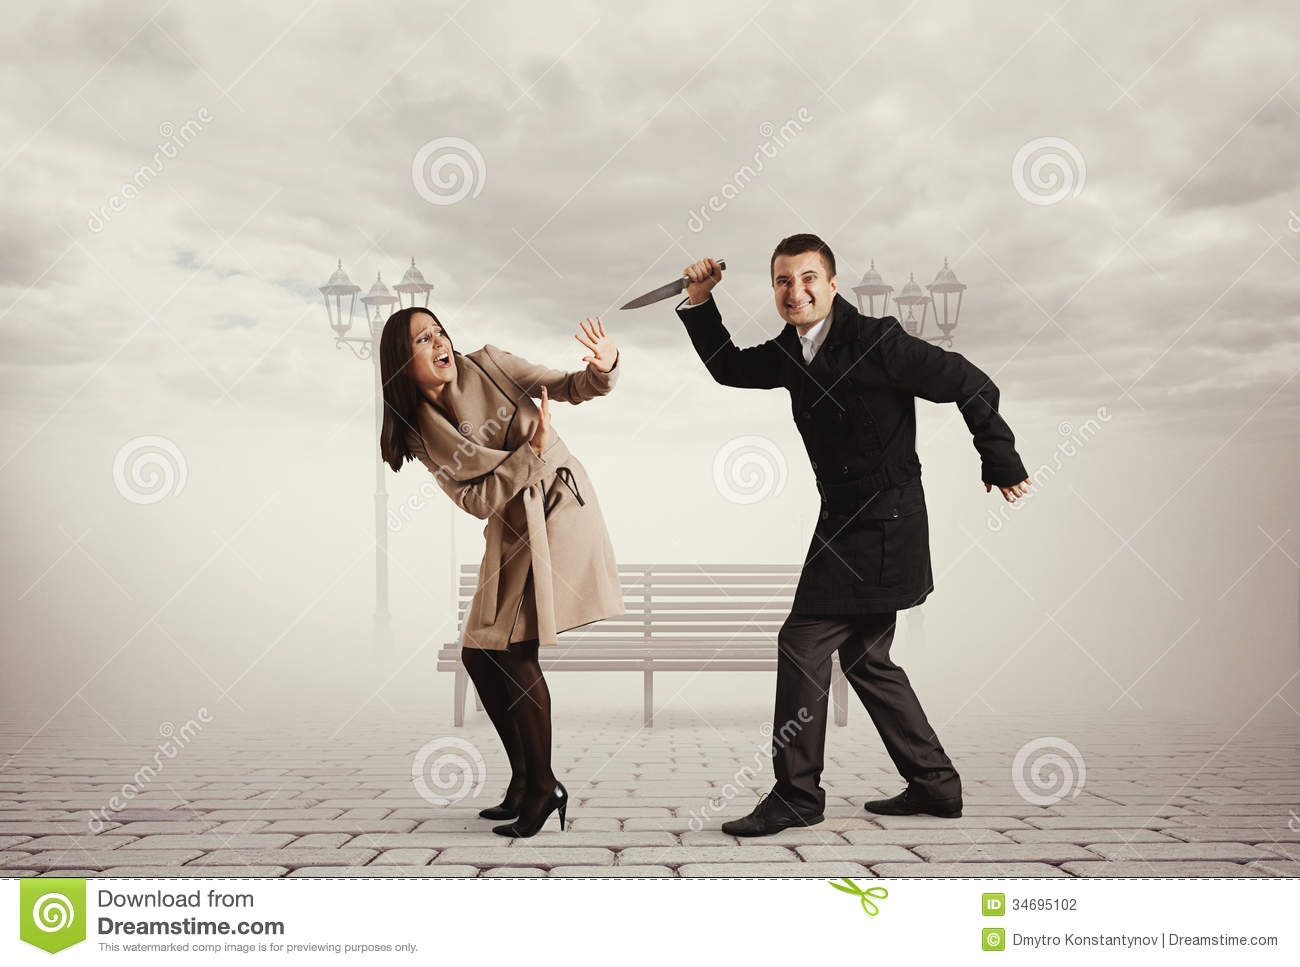 man with knife attacking woman stock photo image of rendezvous